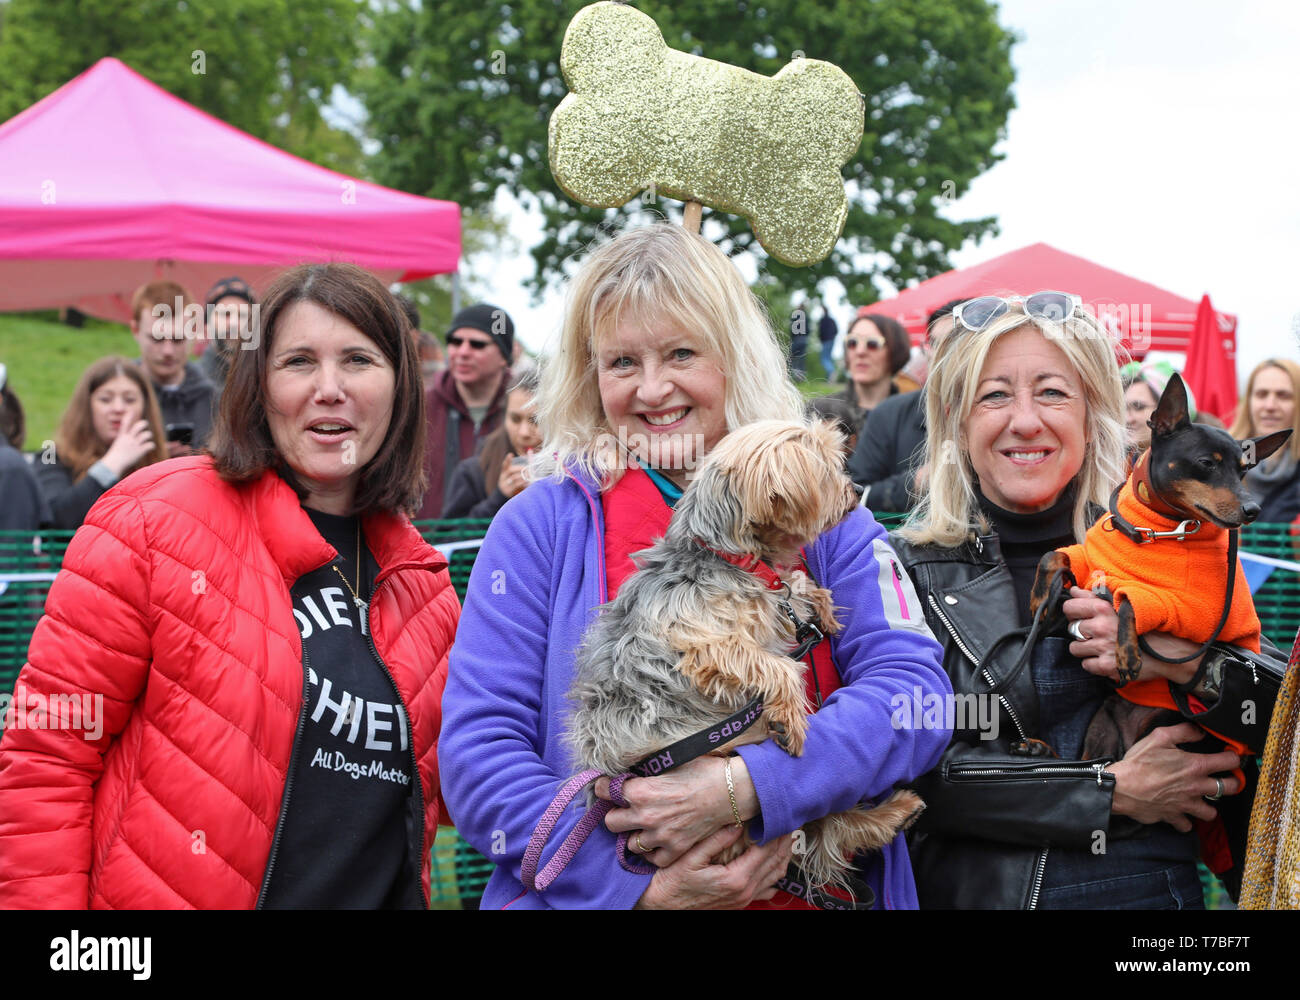 London, UK. 5th May 2019. Judge Liza Goddard with her Yorkshire Terrier, Violet, with radio presenter Anna Webb and her dog Mr Binks and Ira Moss of ADM at the All Dogs Matter Bark Off charity dog show, Hampstead Heath, London, England. Cute dogs took part in several categories of this annual dog show which is run by the charity which houses and rehomes dogs in London and finds homes for dogs from overseas. Dogs competed to be cutest pup, best rescue and more. More information at www.alldogsmatter.co.uk Credit: Paul Brown/Alamy Live News Stock Photo